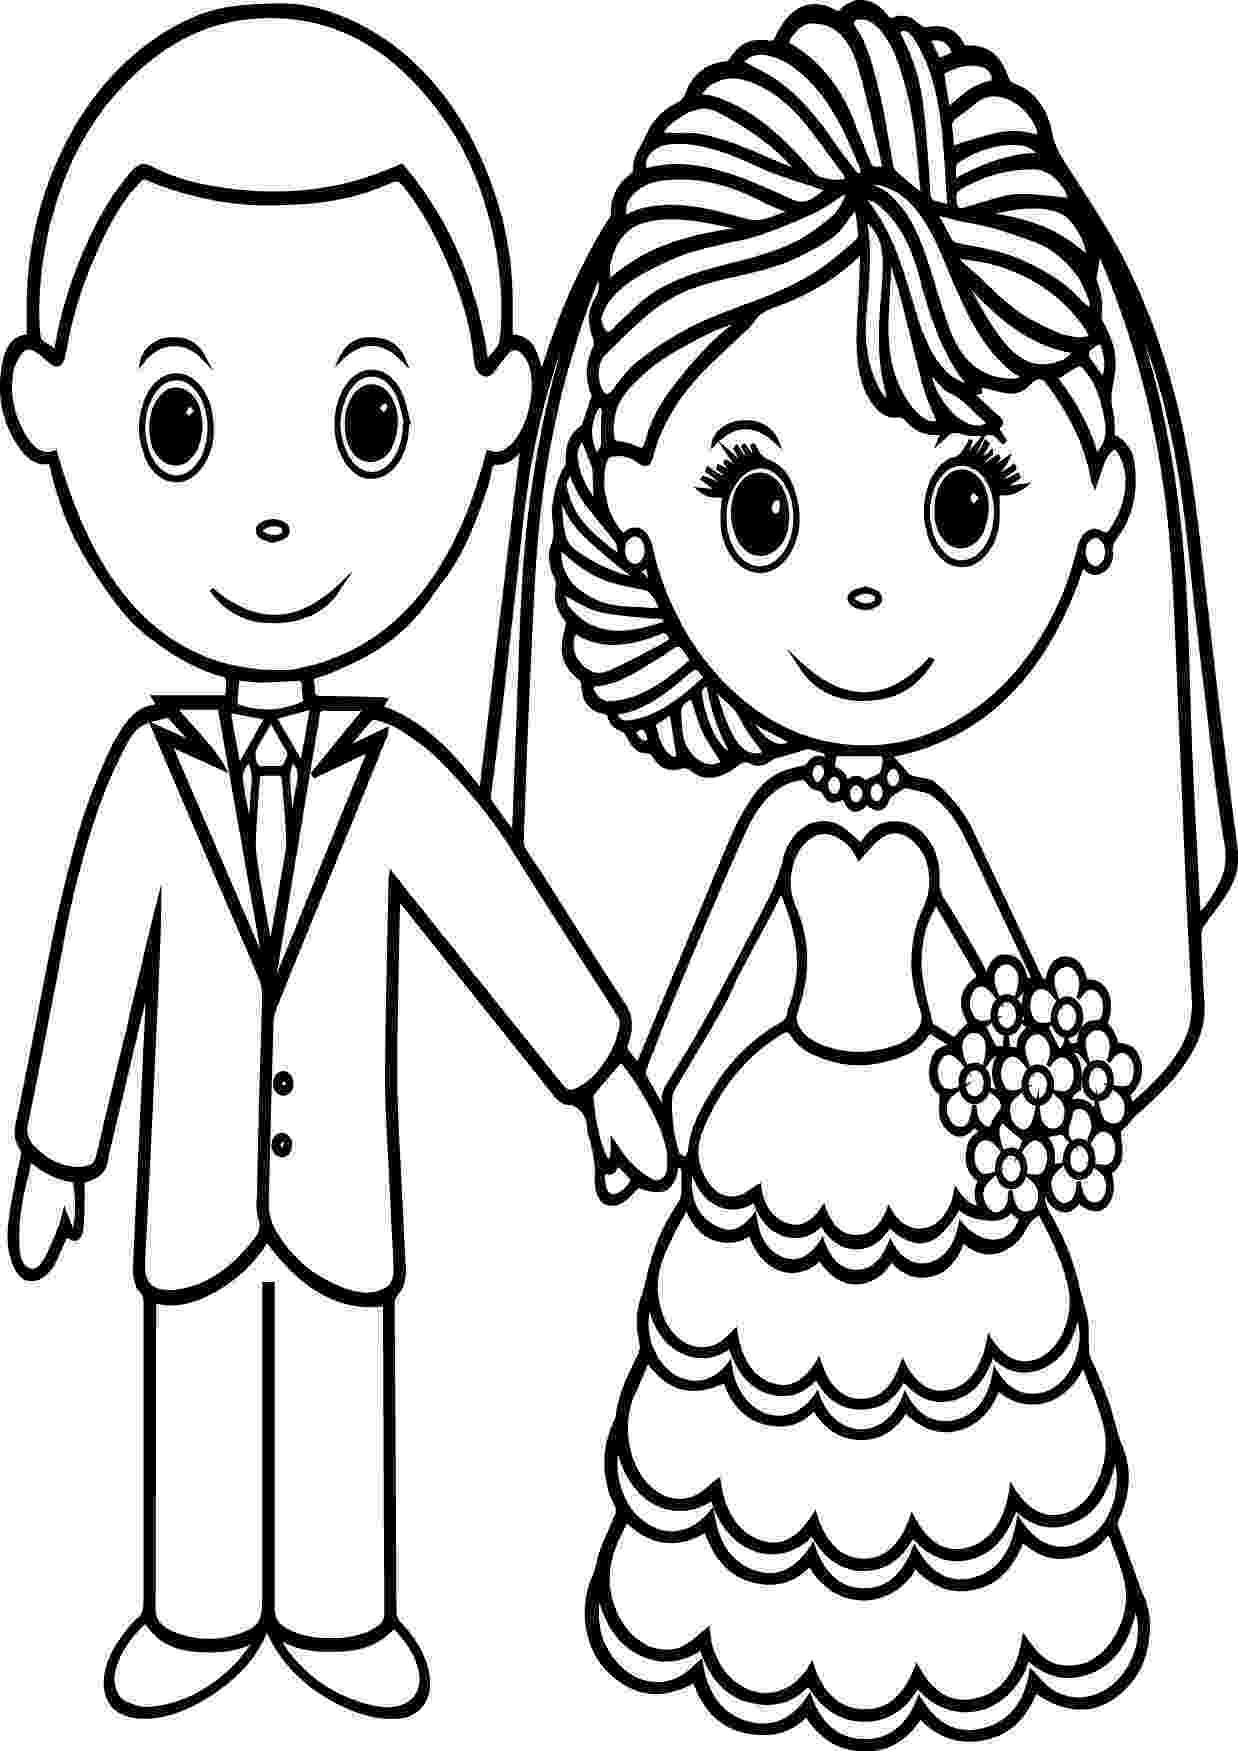 wedding coloring page printable personalized wedding coloring activity by coloring page wedding